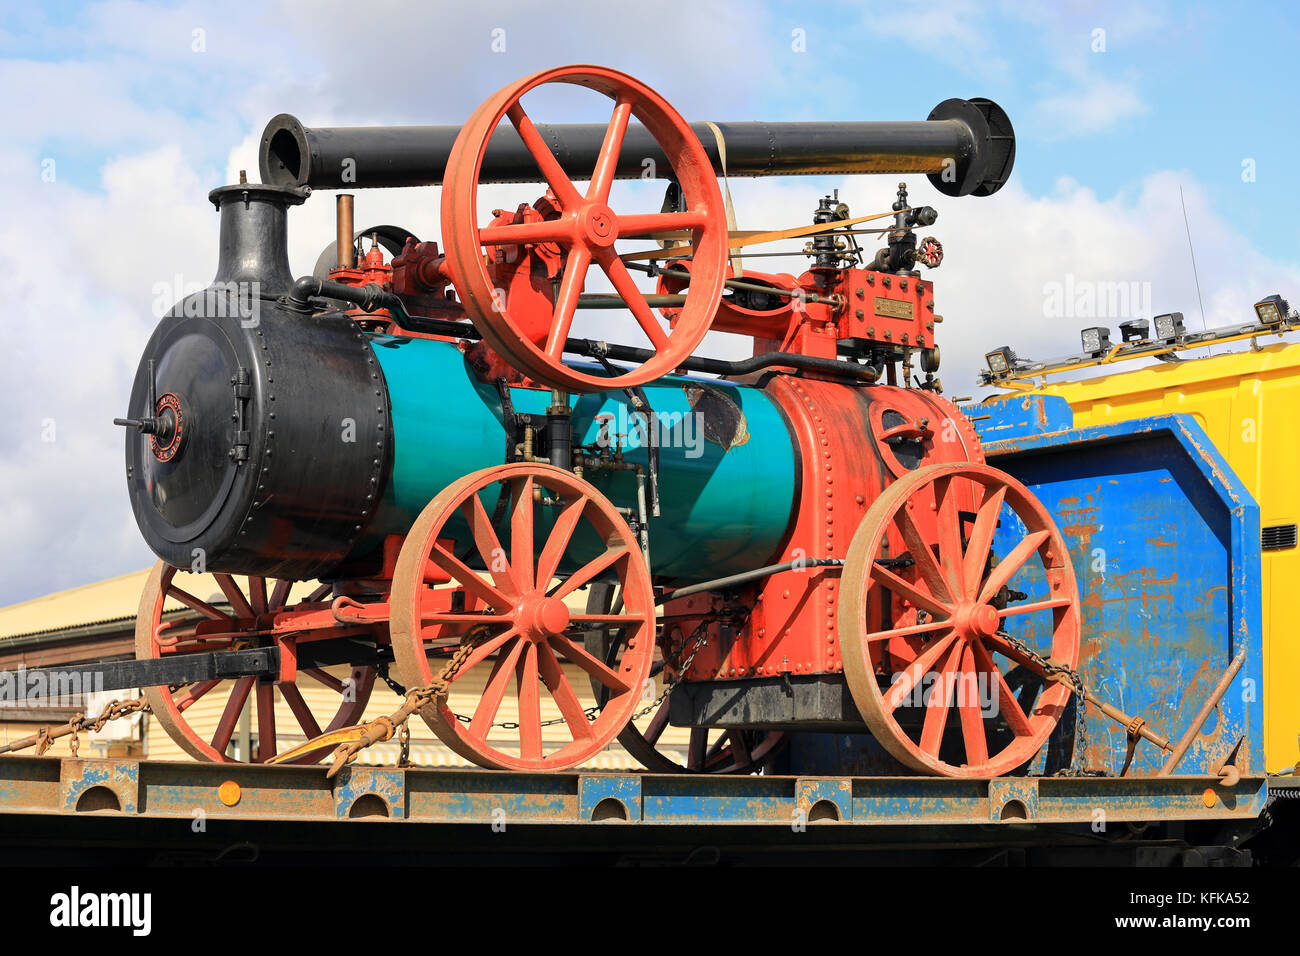 KOSKI TL, FINLAND - SEPTEMBER 1, 2017: Steam Traction Engine by Ruston, Proctor & Co, probably year 1899 transported - Stock Image